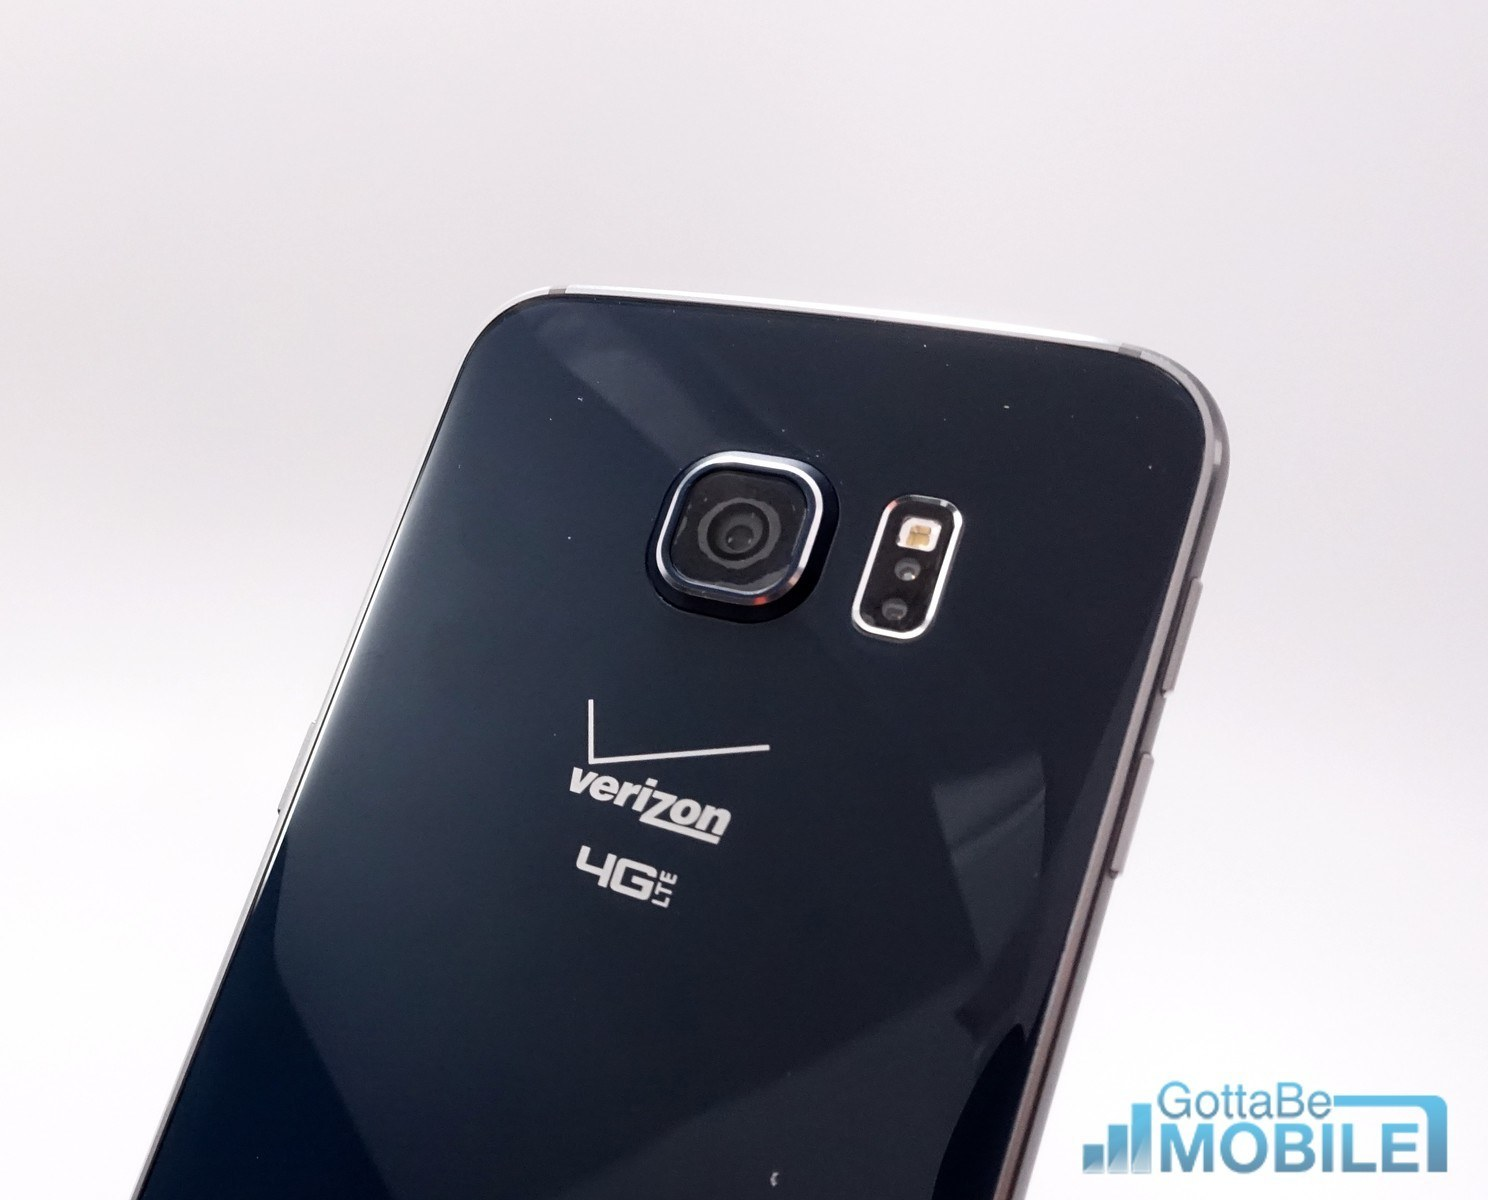 10 Common Galaxy S6 Problems & How to Fix Them